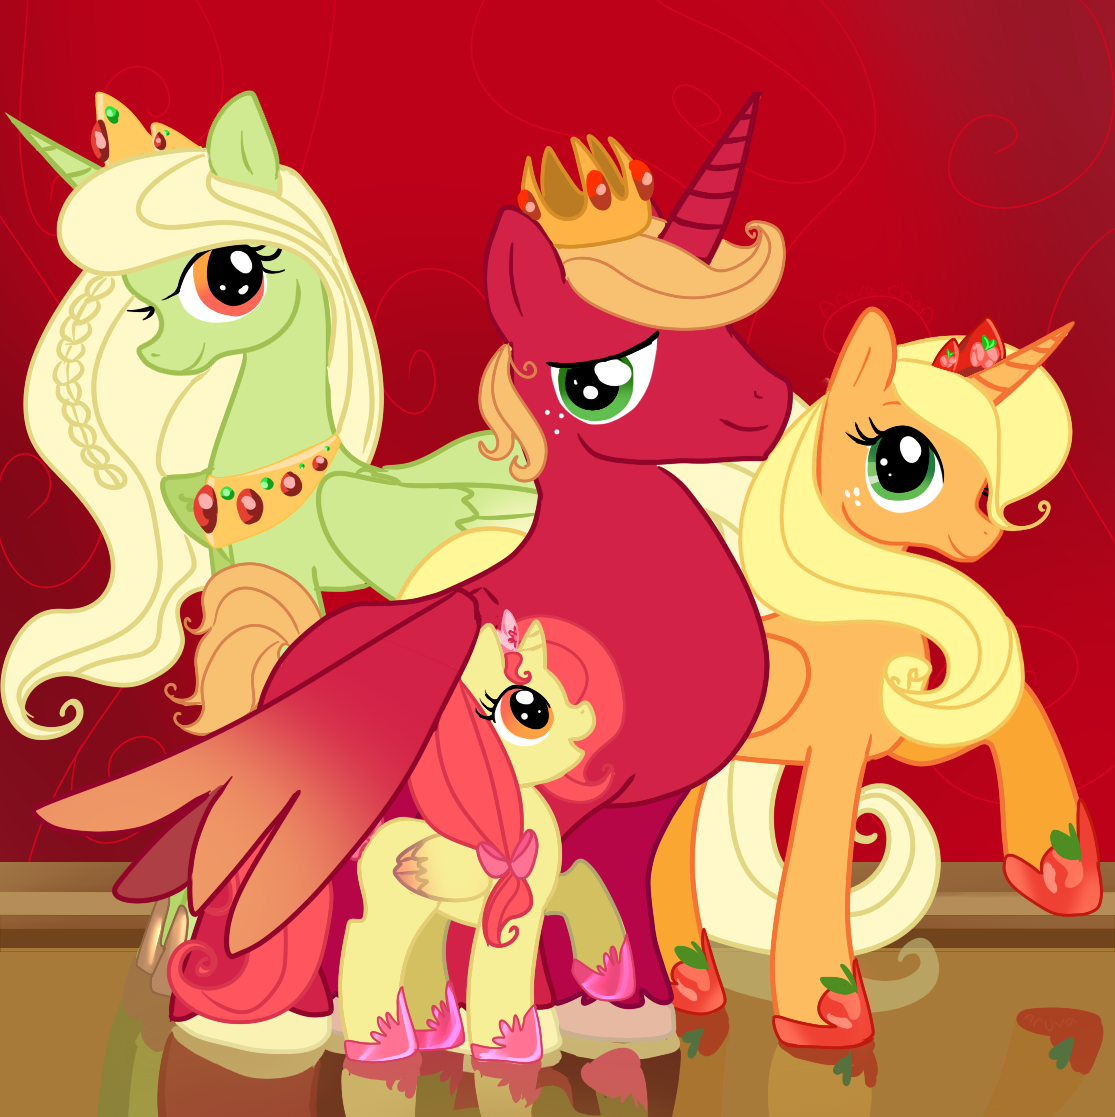 My little pony friendship is magic family tree - photo#19